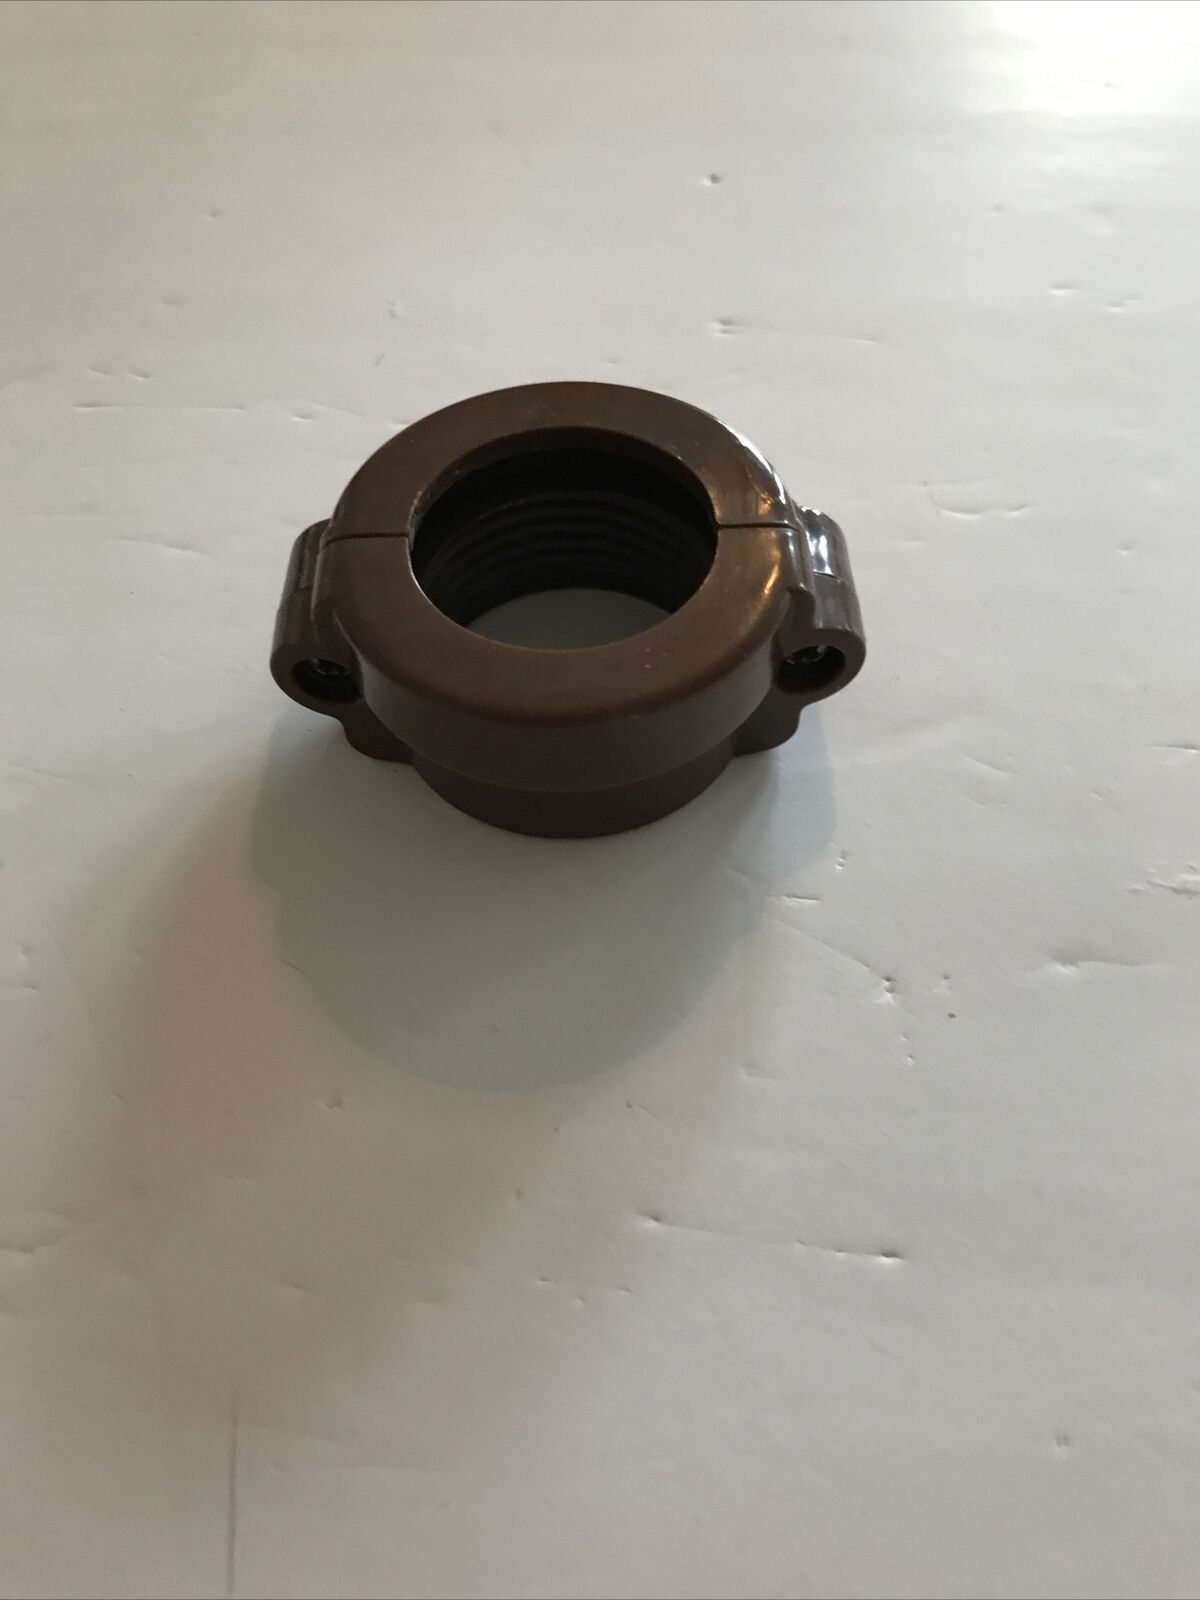 Brown Lay-Z-Spa Pump Inlet/Outlet B/C Coupling Lazy Spare Part Helsinki/St Morit